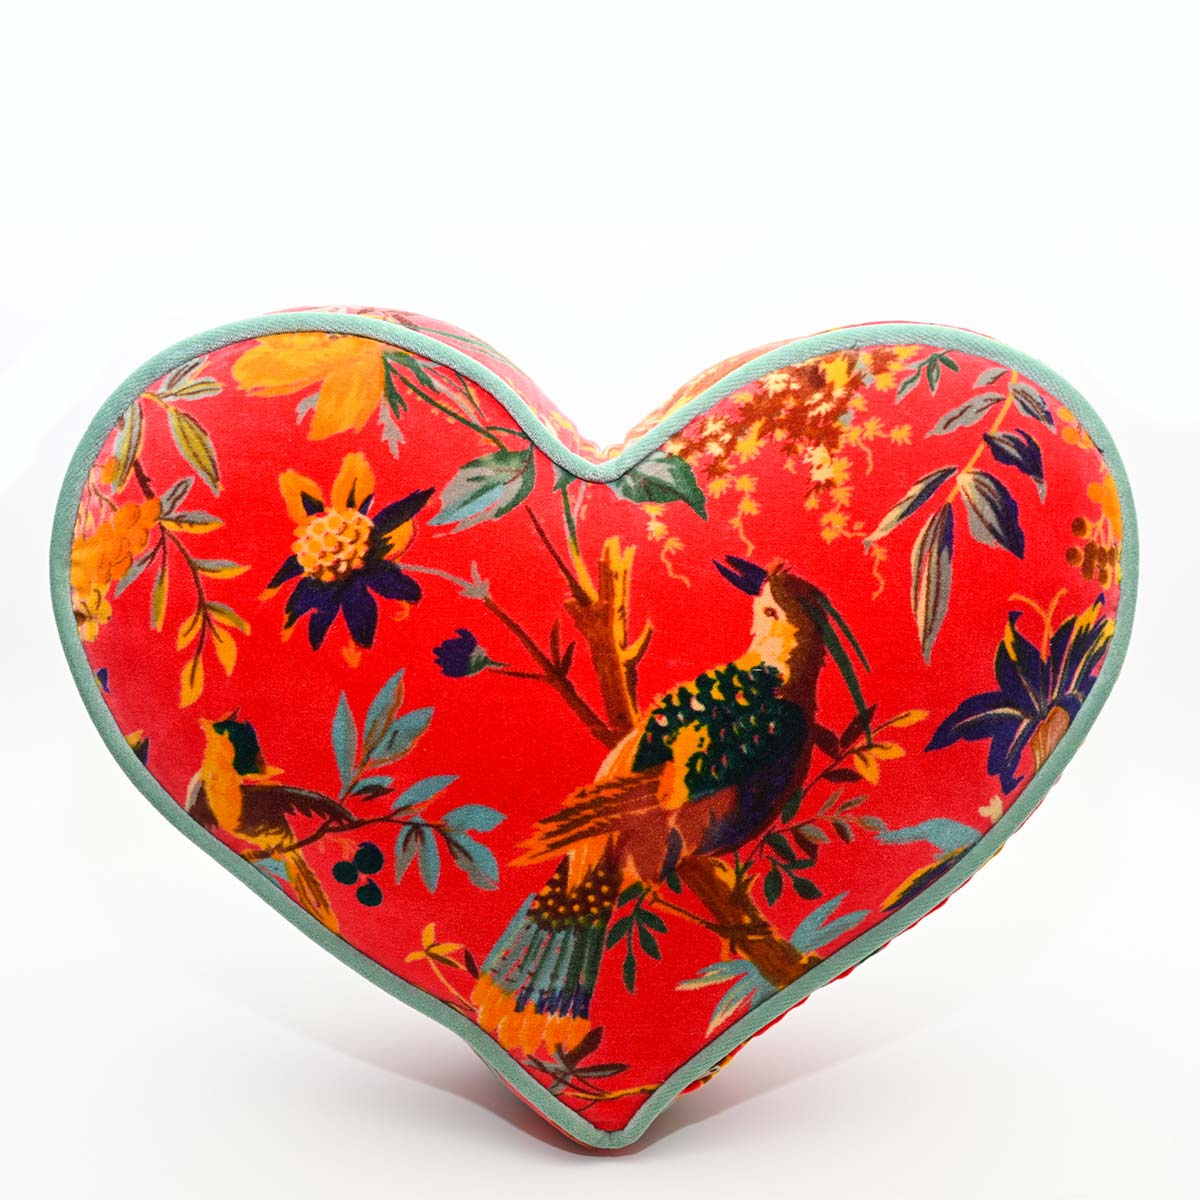 heart pillow large size bird motif onred DSC 6326